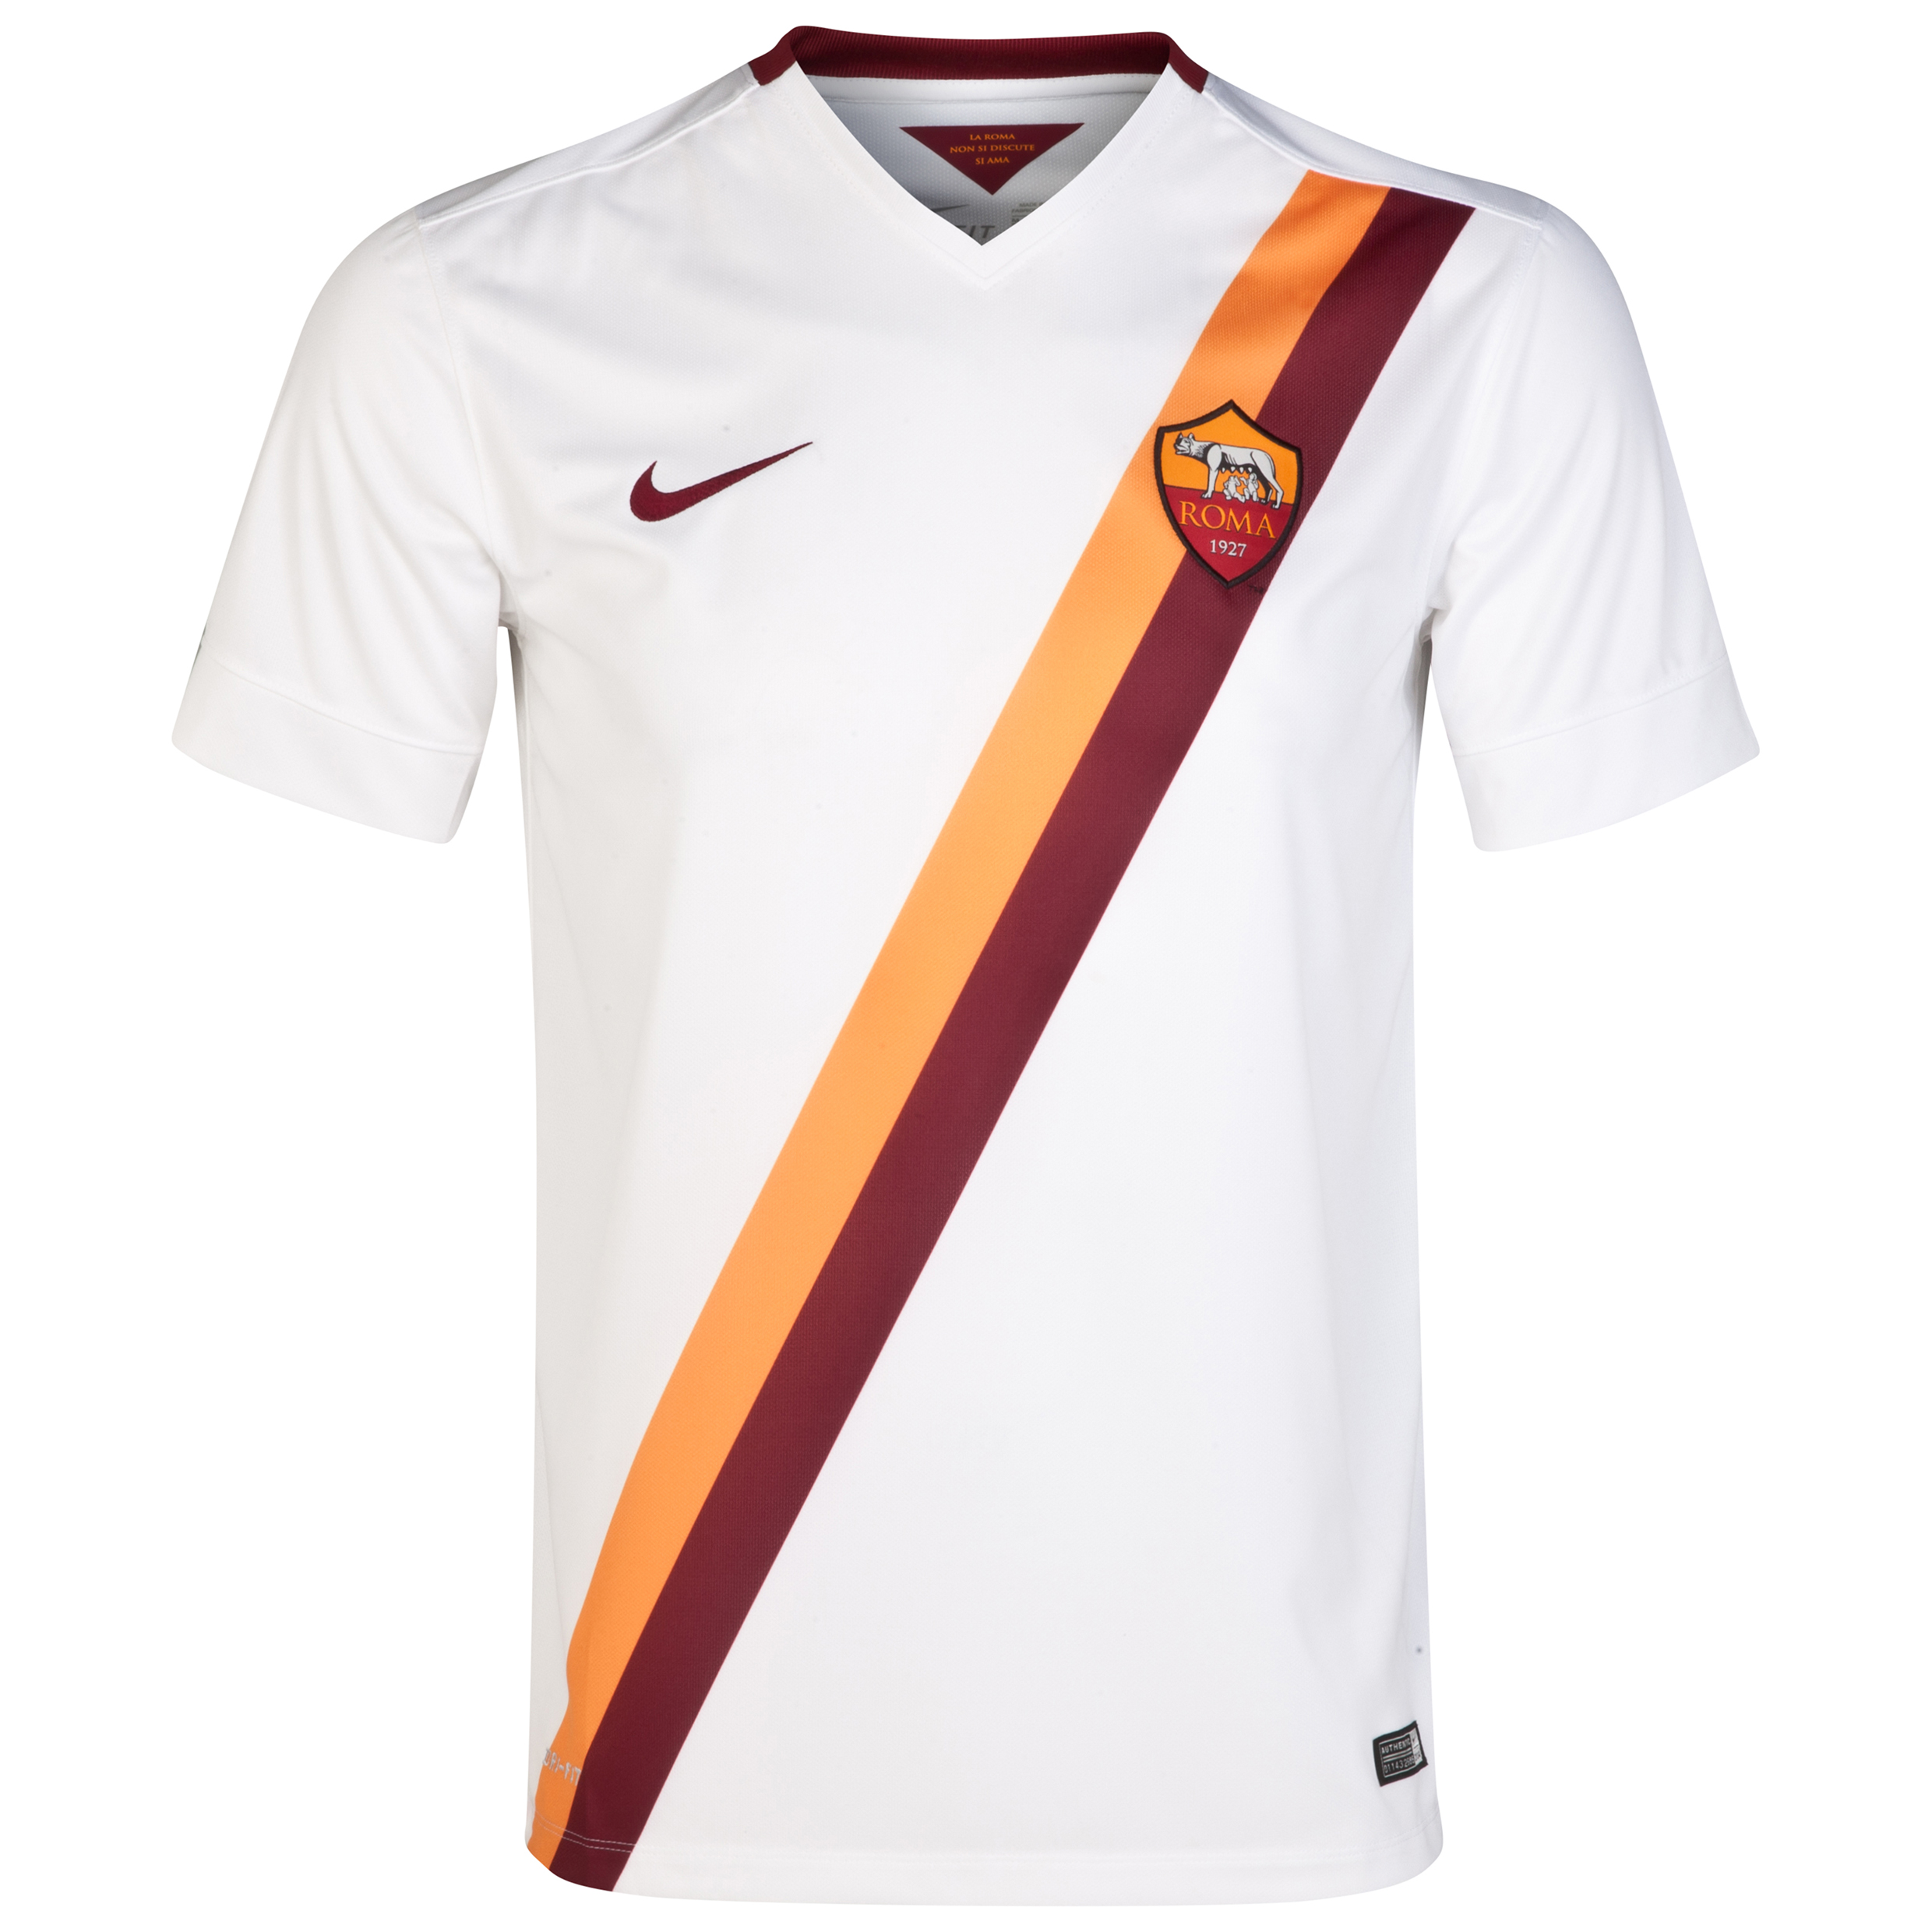 AS Roma Away Shirt 2014/15 White